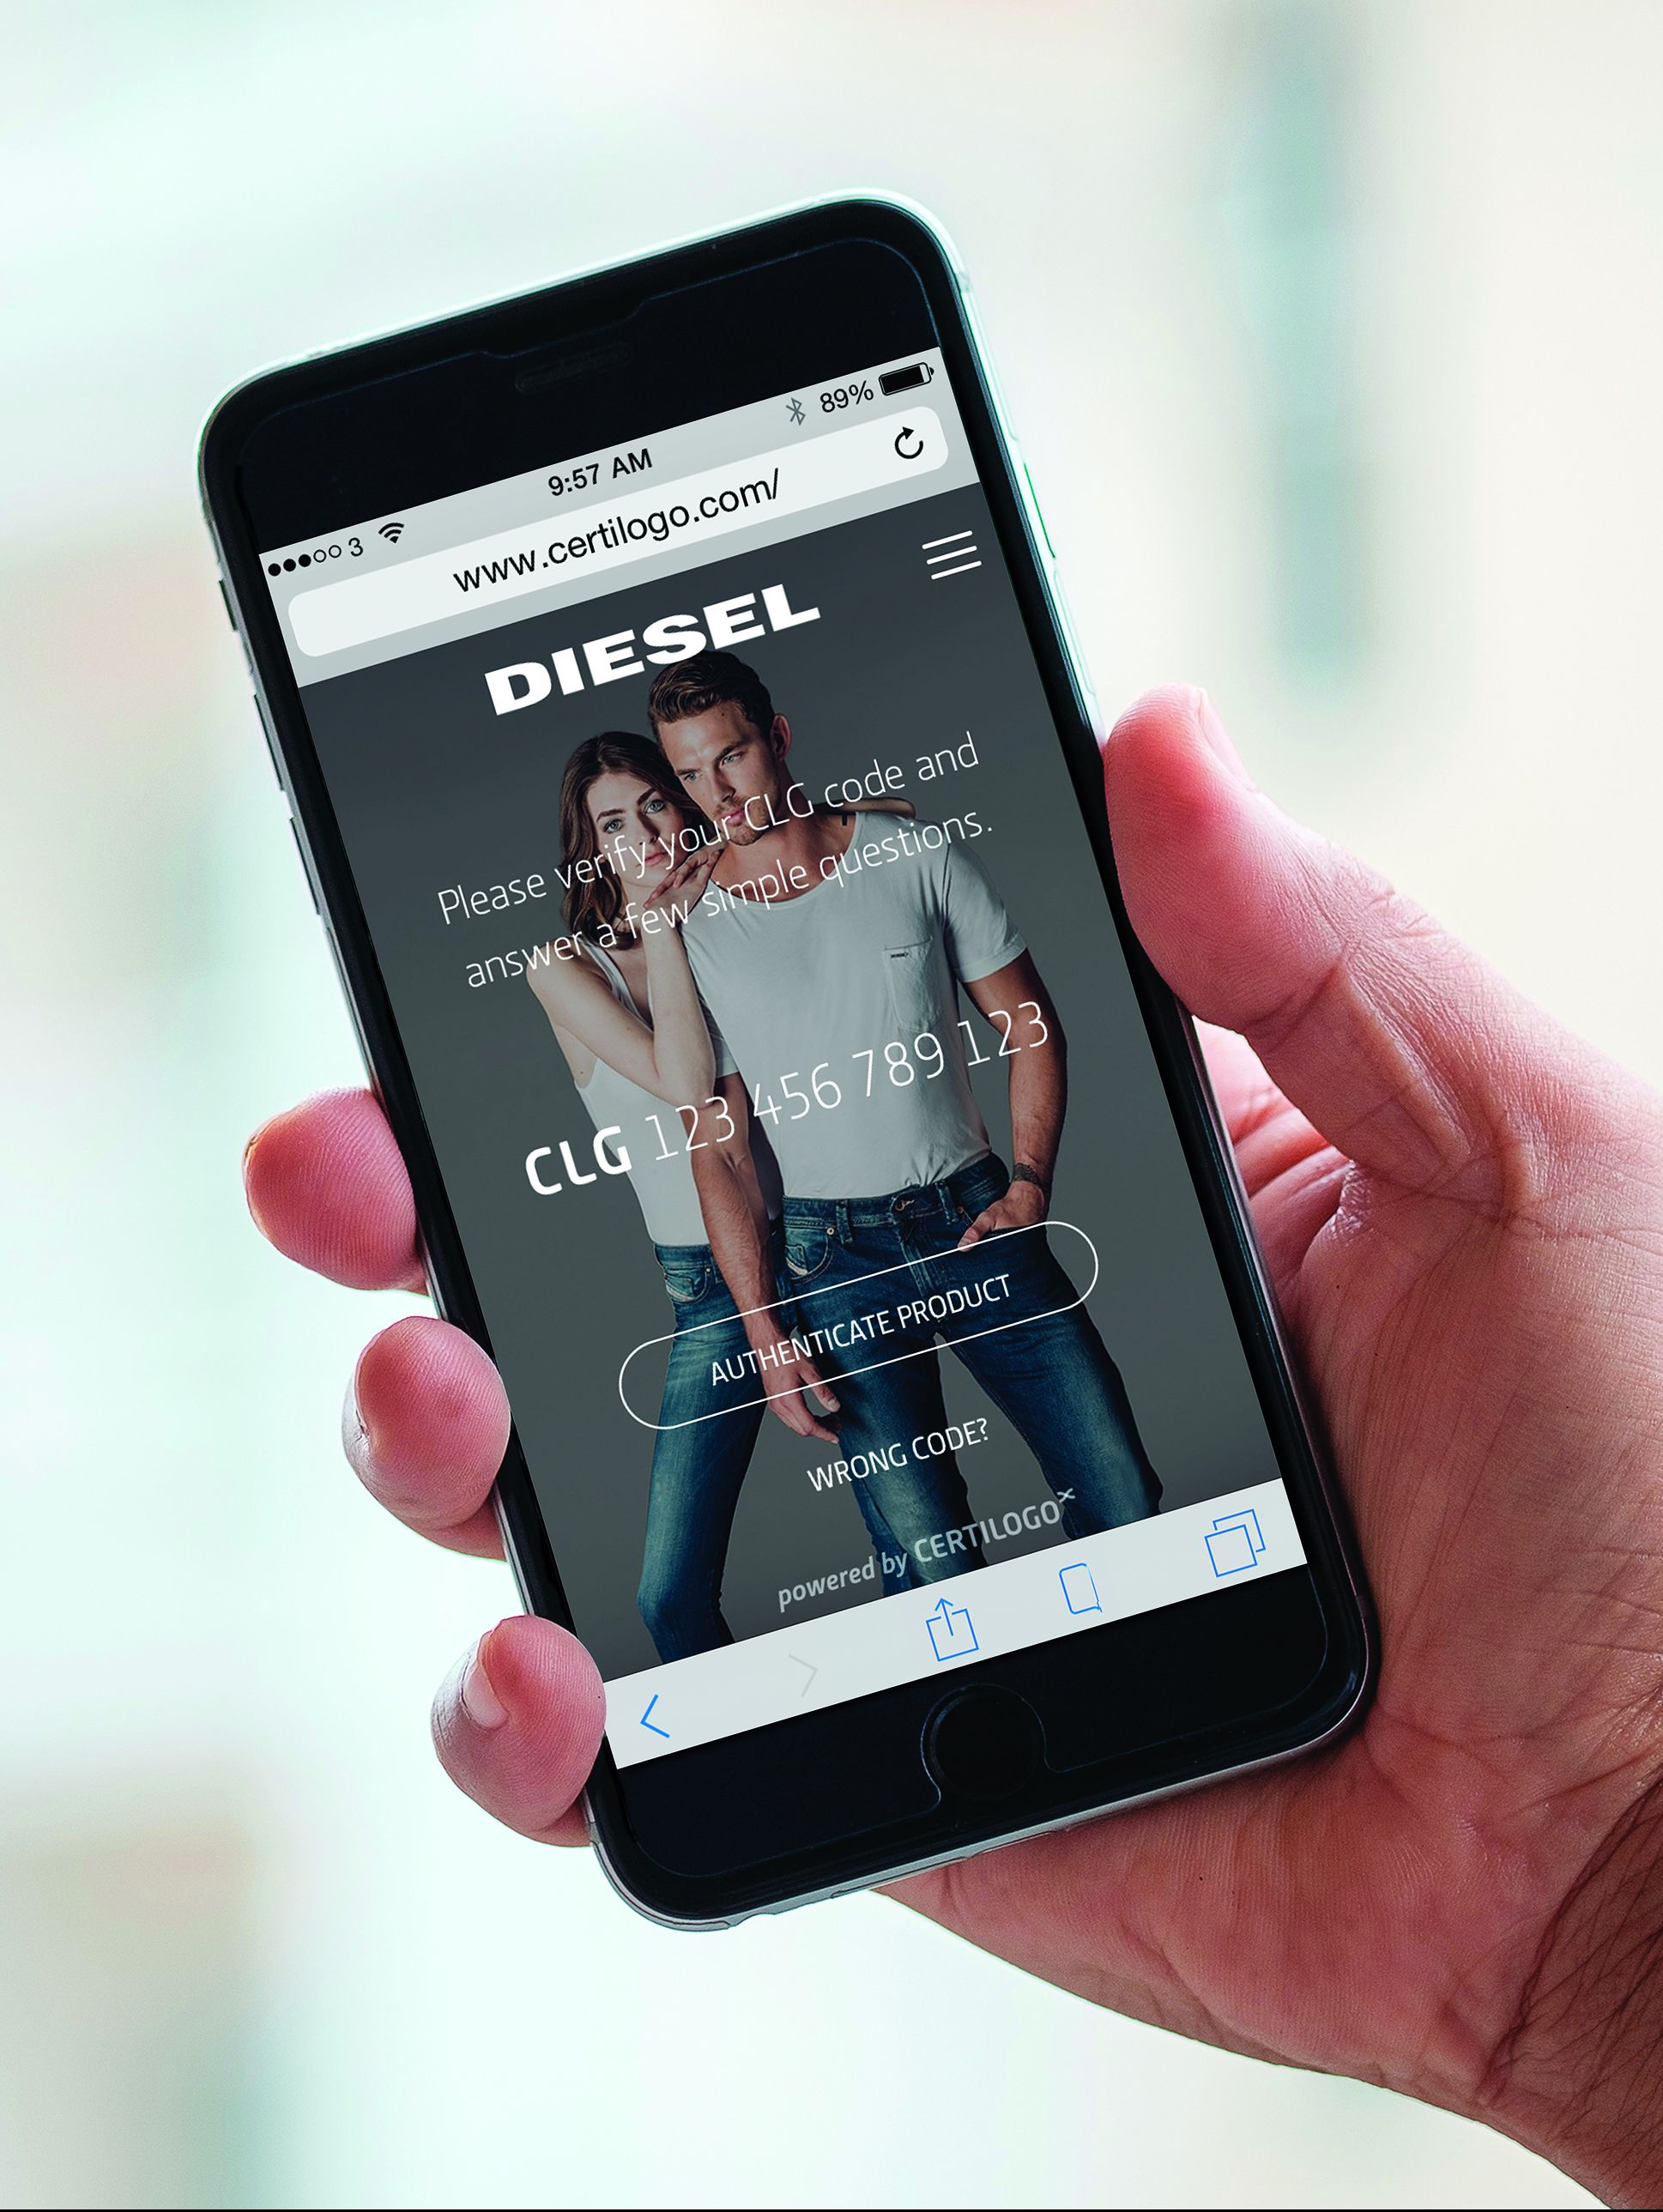 Diesel teams up with Certilogo to protect consumers from counterfeiters